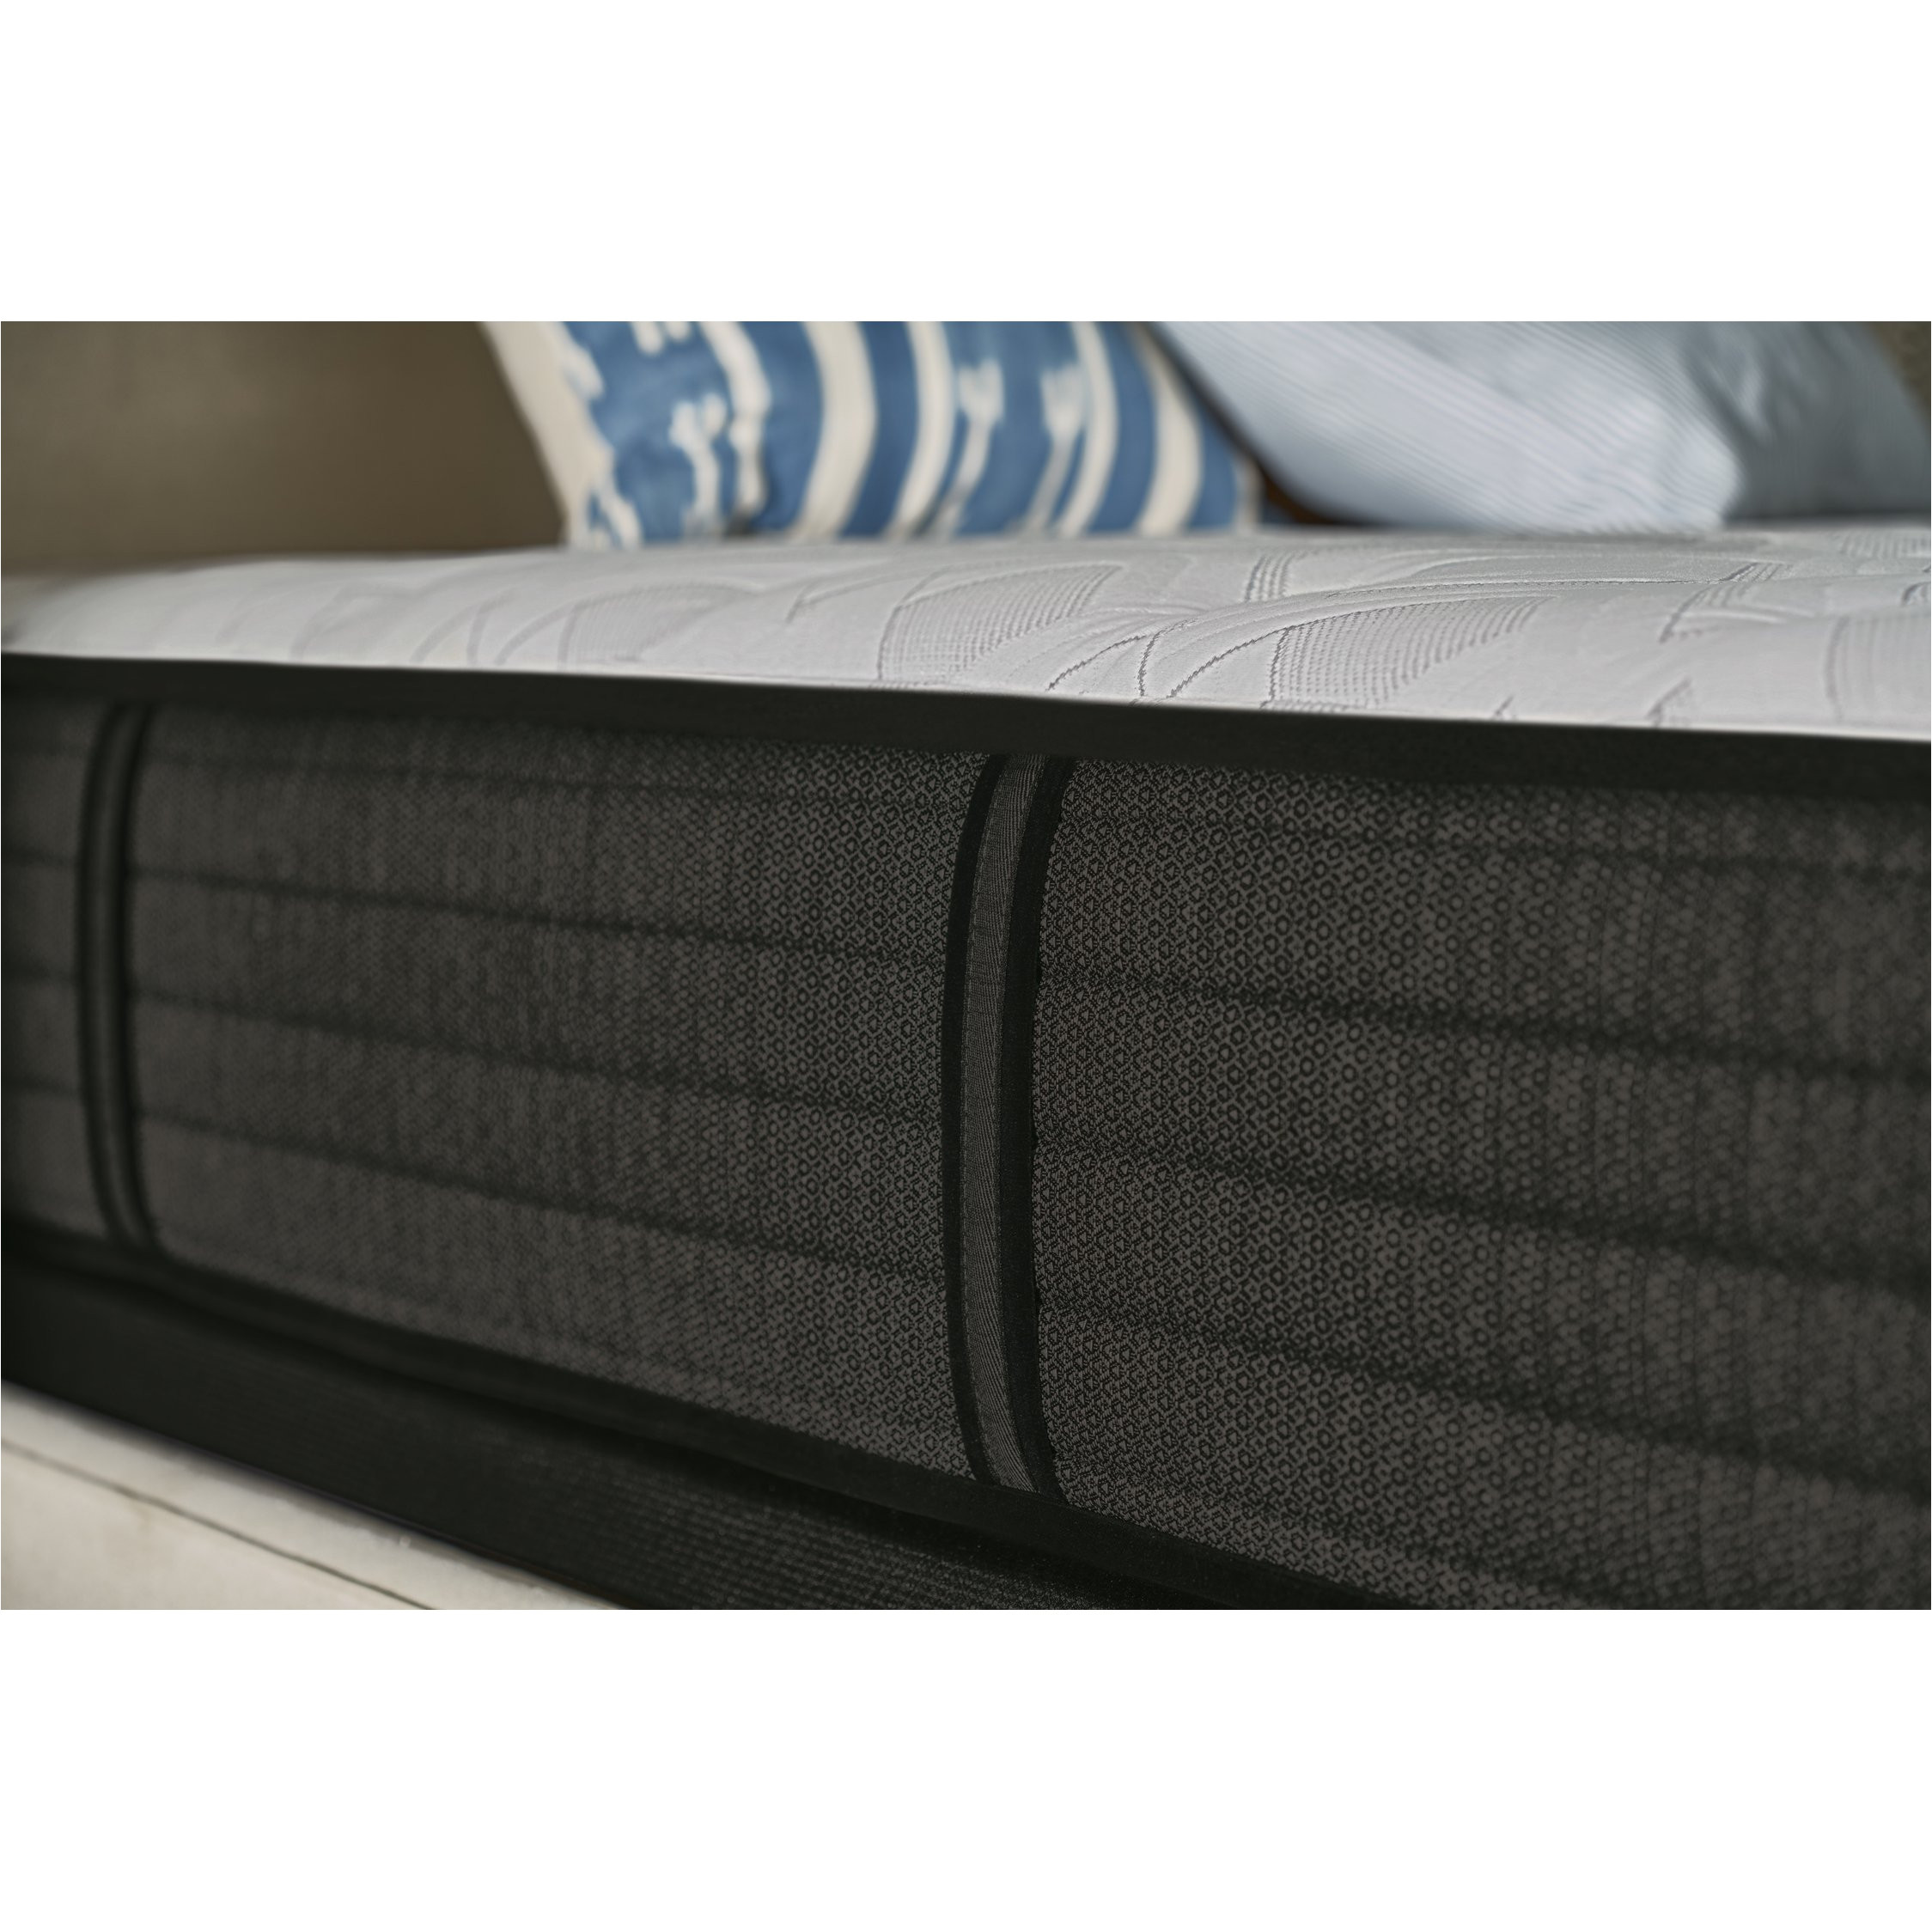 sealy response performance 12 5 inch cushion firm full size mattress set free shipping today overstock 22931248